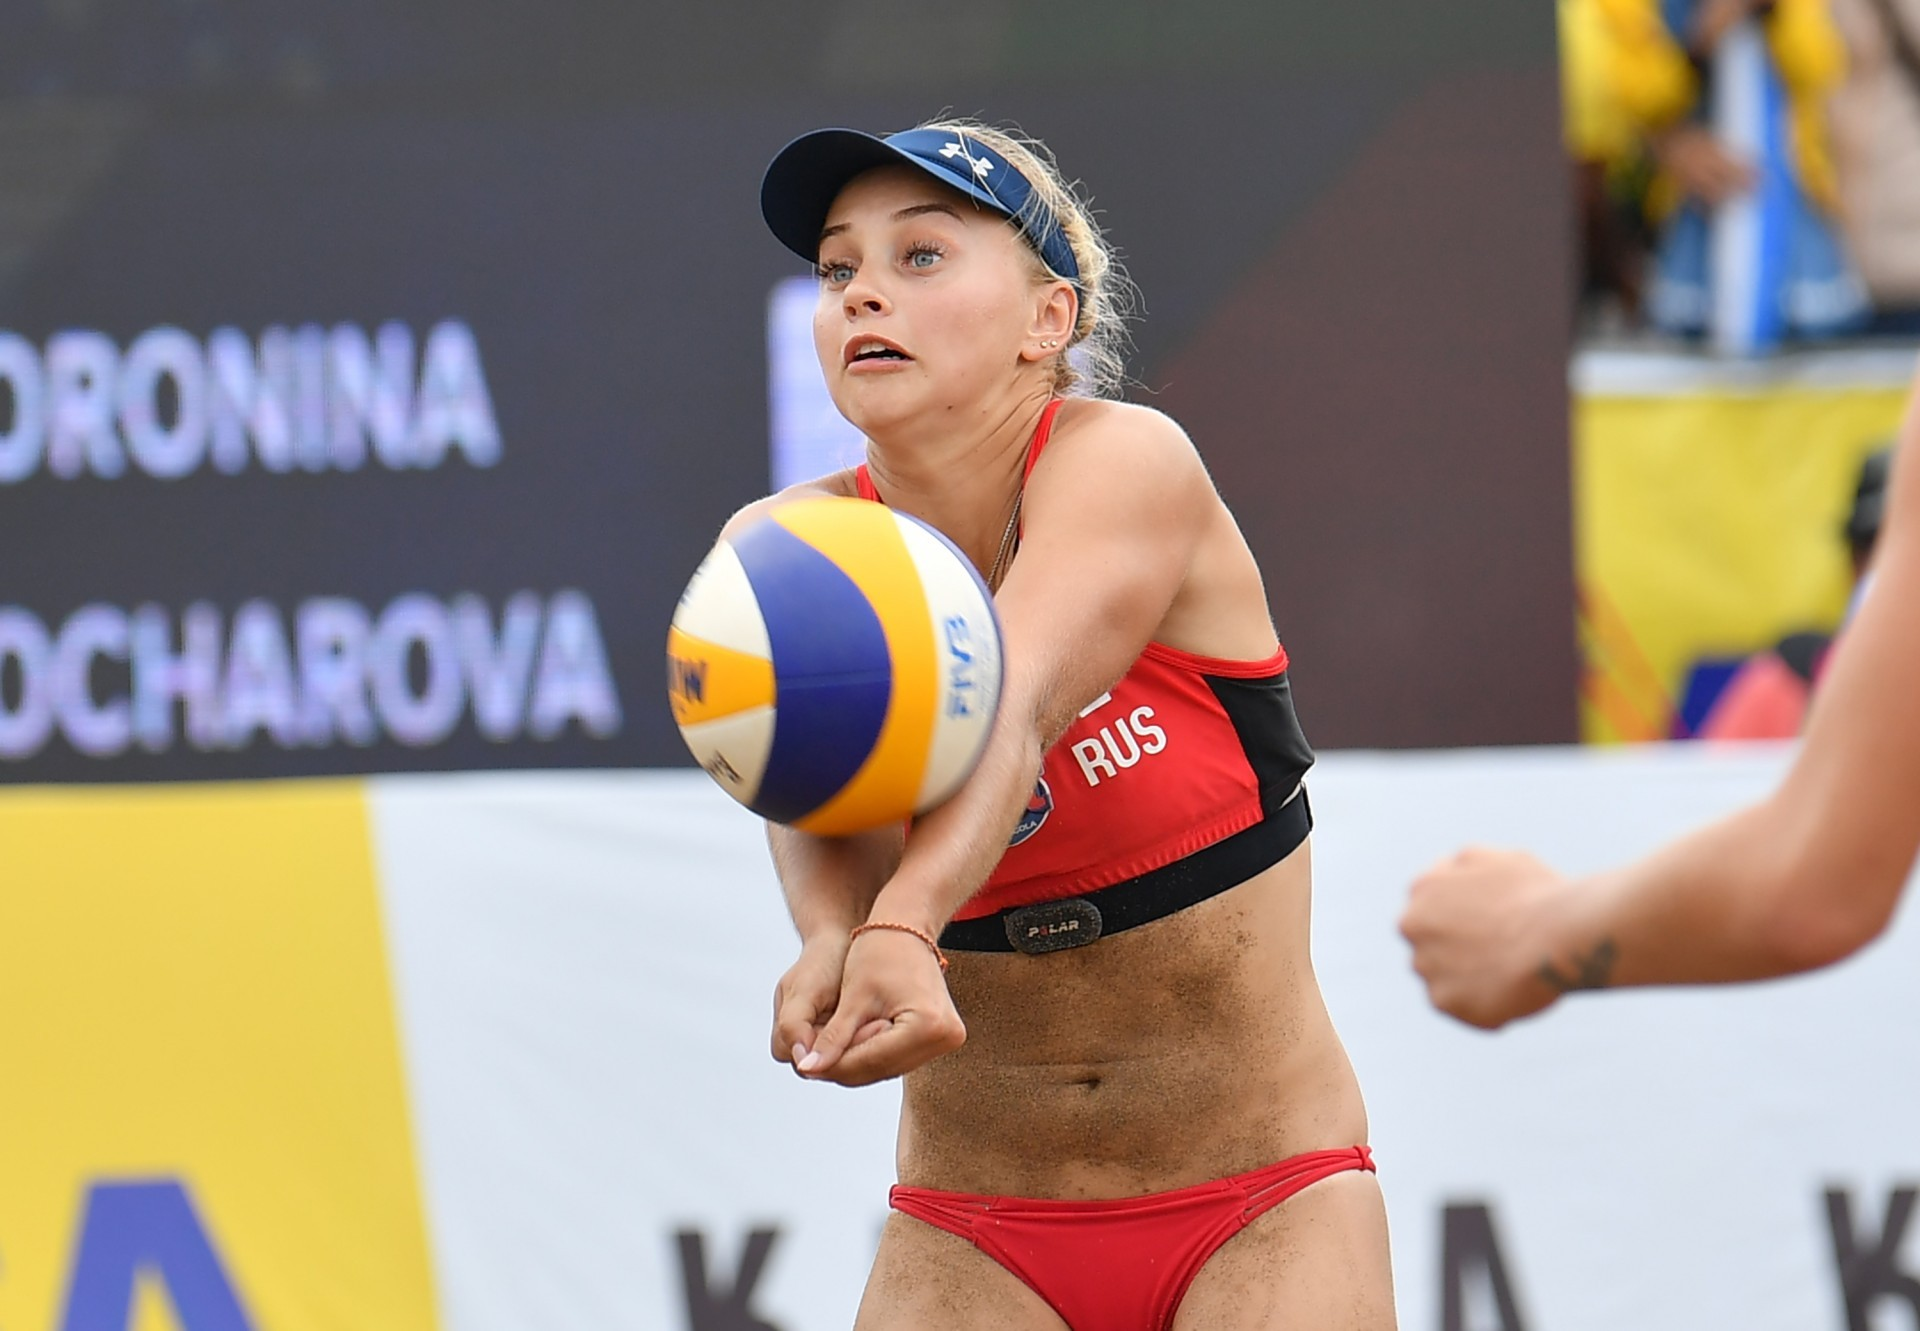 Maria Voronina won last year's Russian Cup with Mariia Bocharova, but is paired with Svetlana Kholomina in 2020